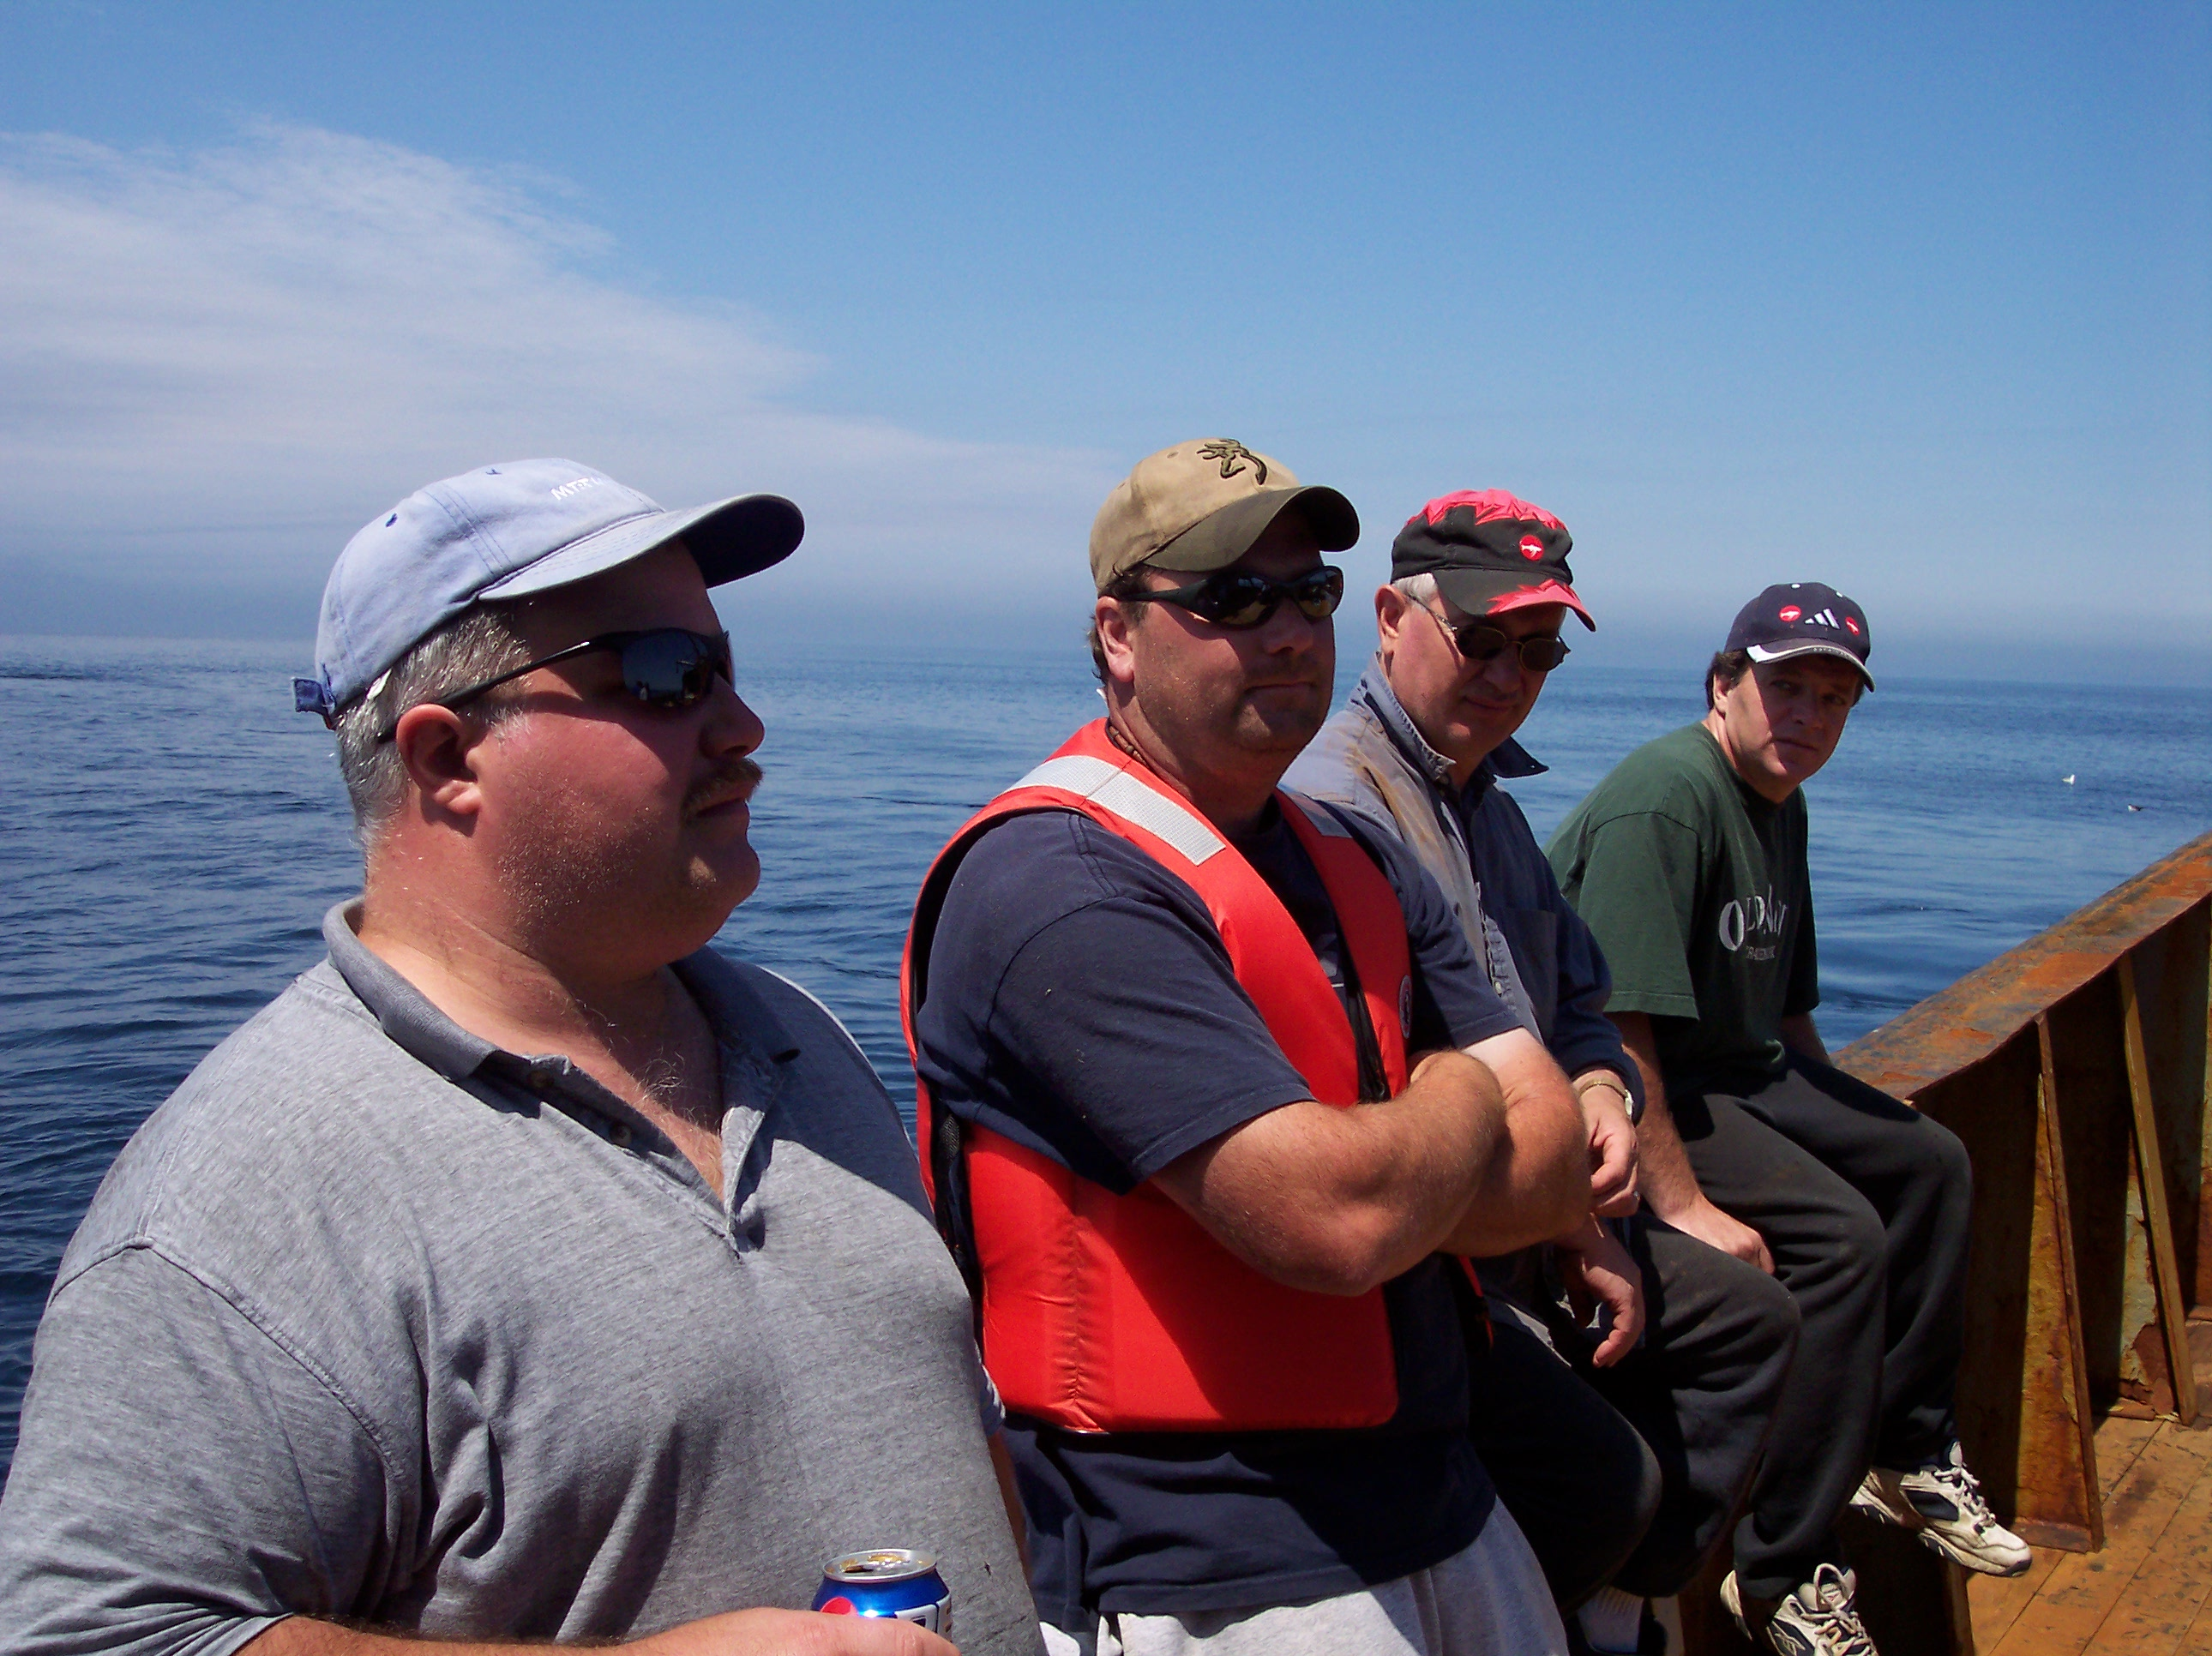 006 Support diver Paul and the crew of the Ryan Atlantic II